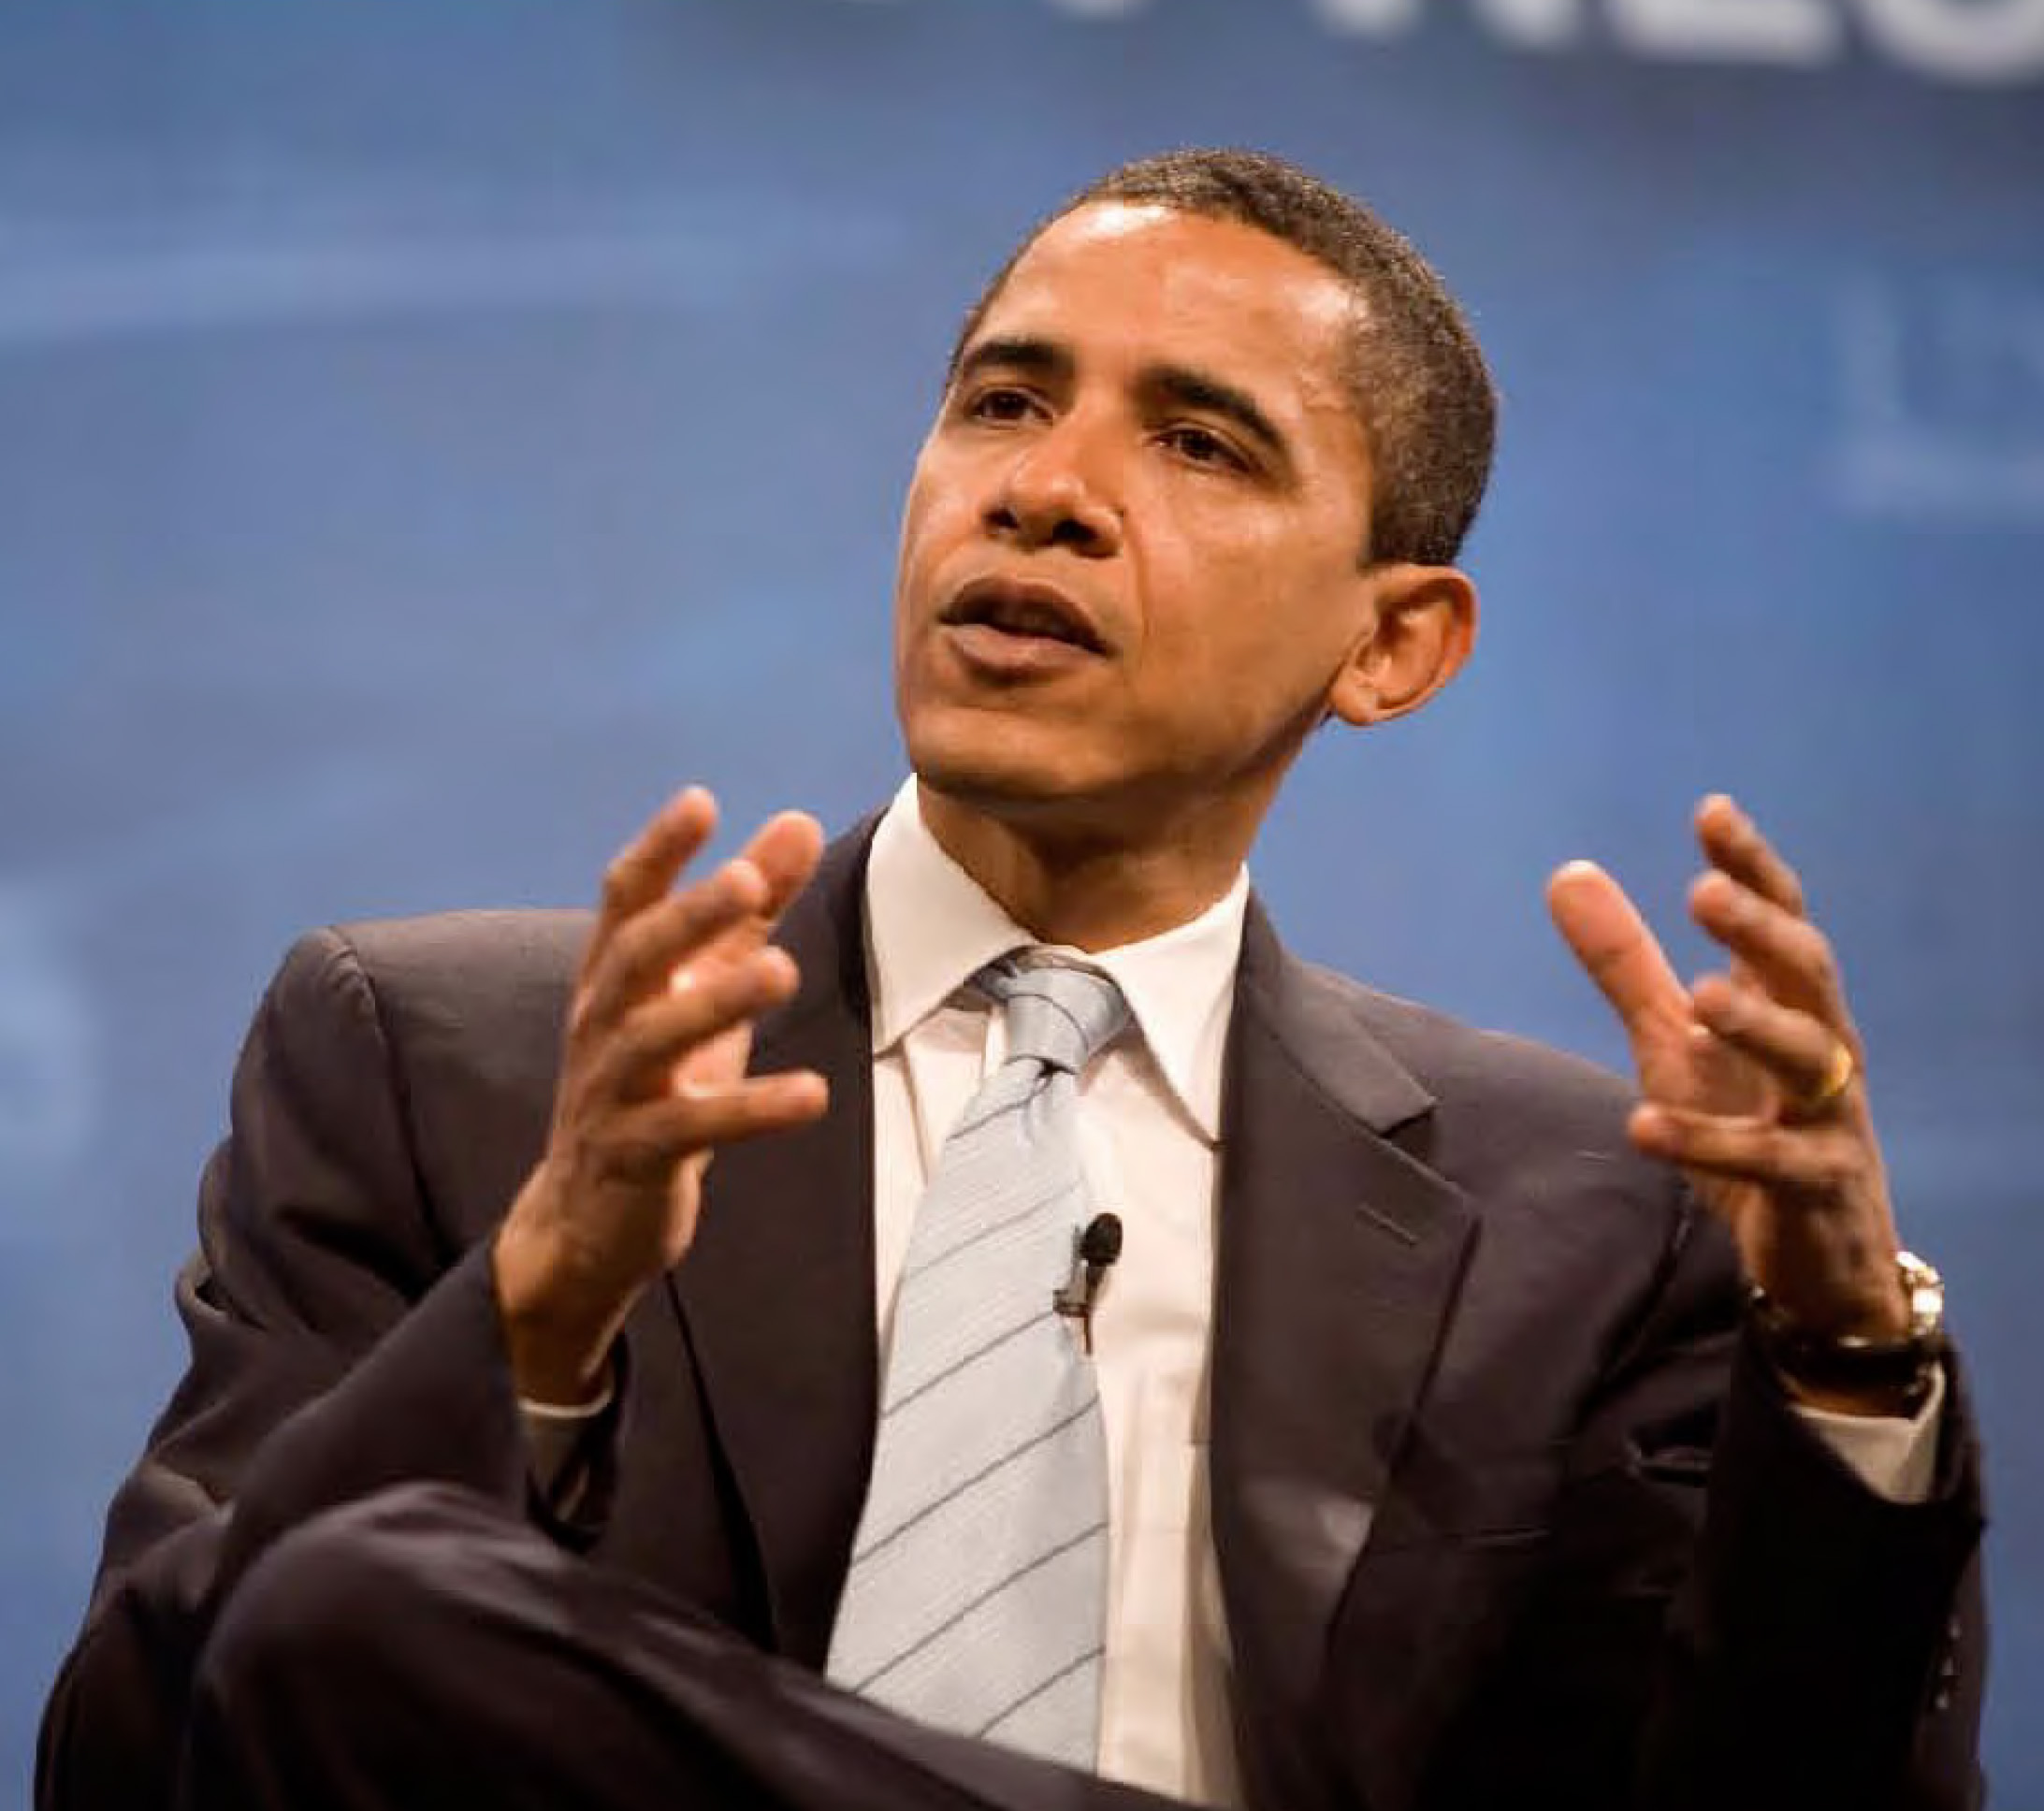 U.S. PRESIDENT MR. bARRACK ObAMA lIfTED All SANCTIONS fROM MYANMAR